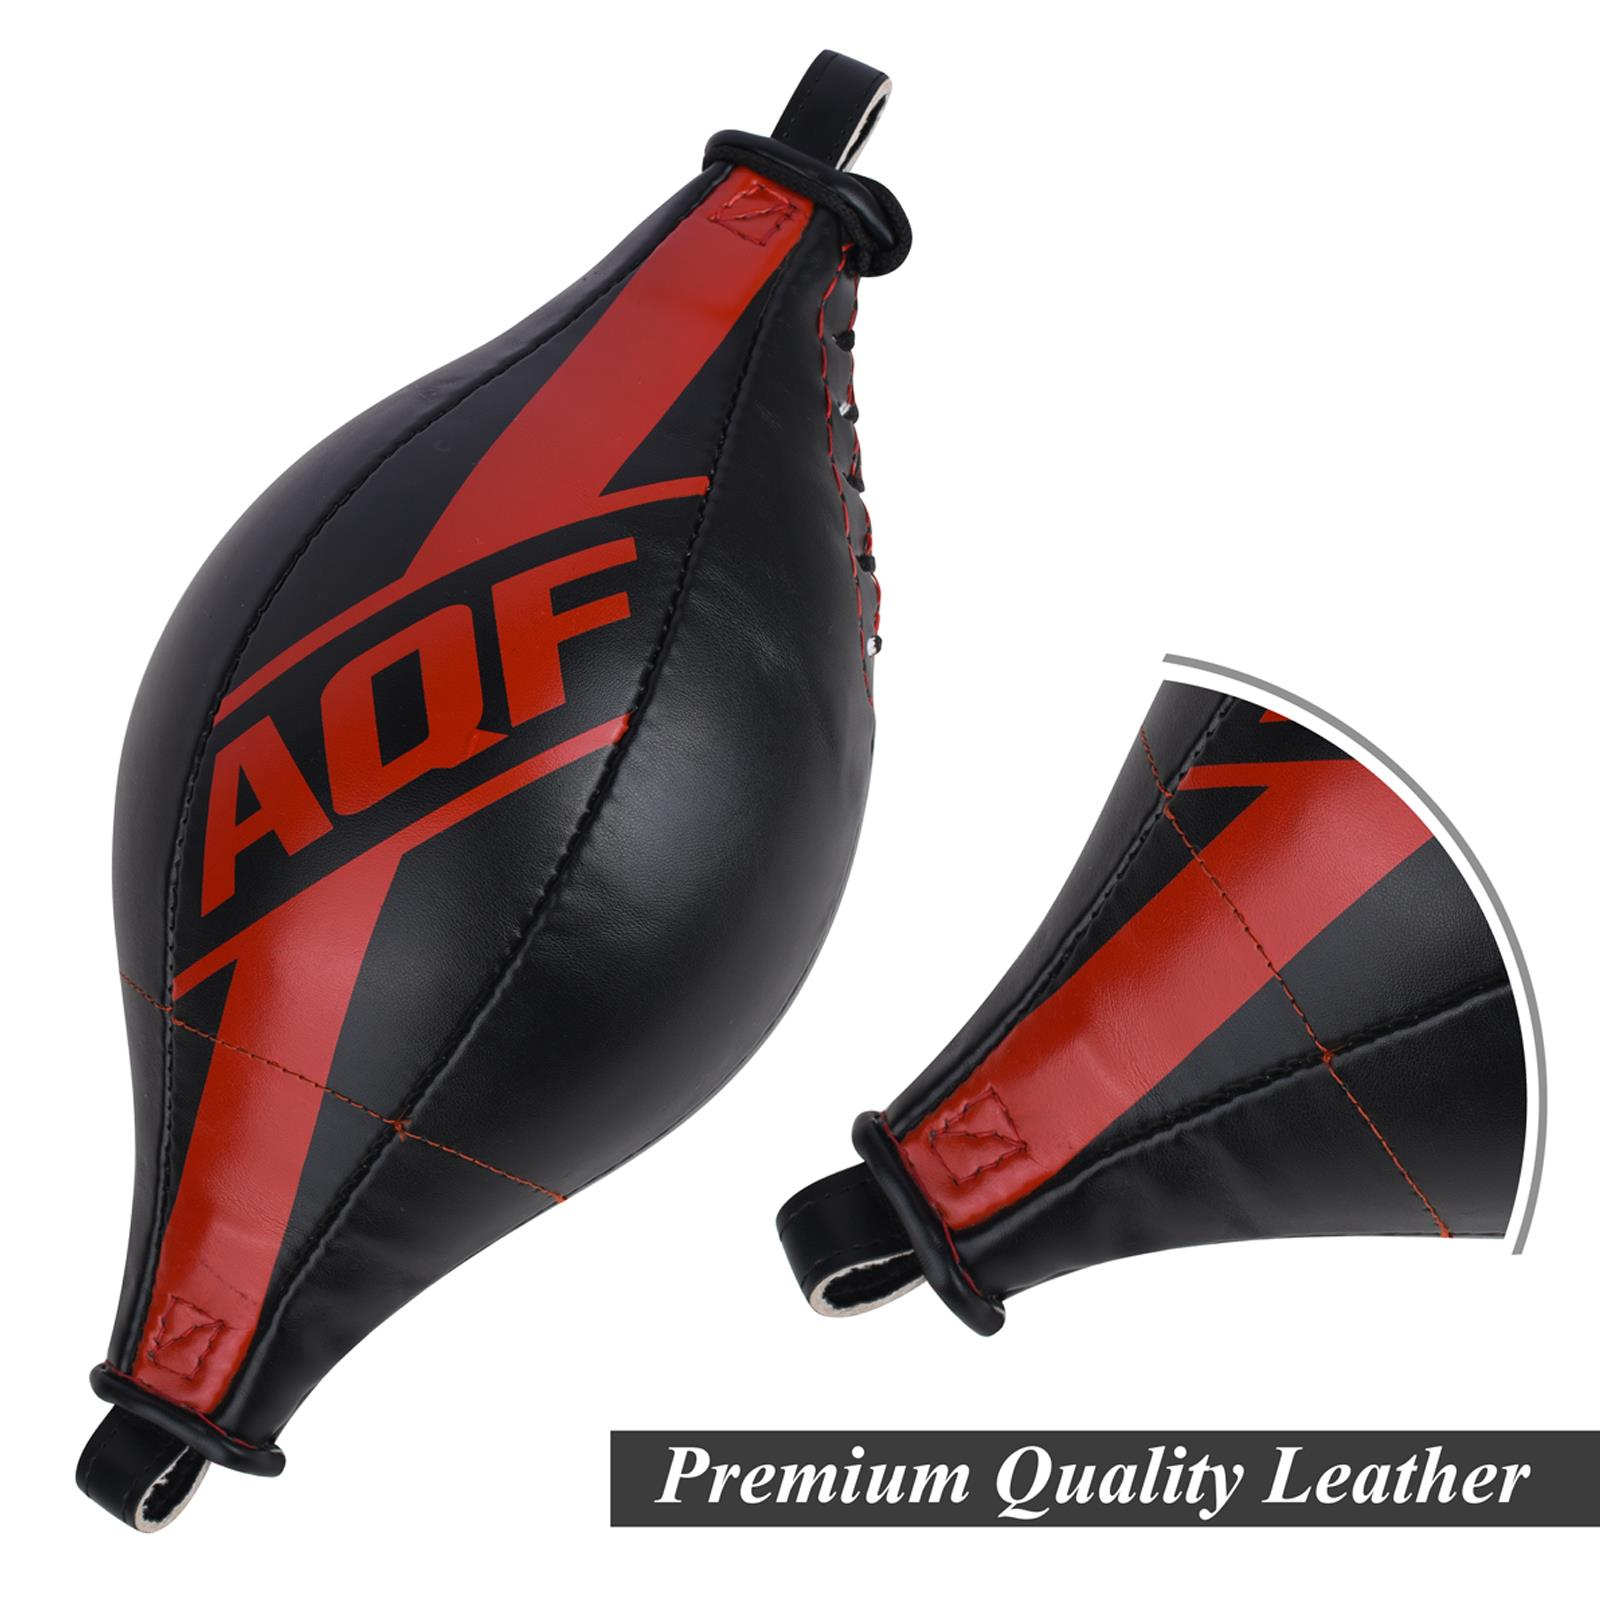 AQF Double End Speed Ball Rex Leather Floor to Ceiling Punch Bag Boxing MMA